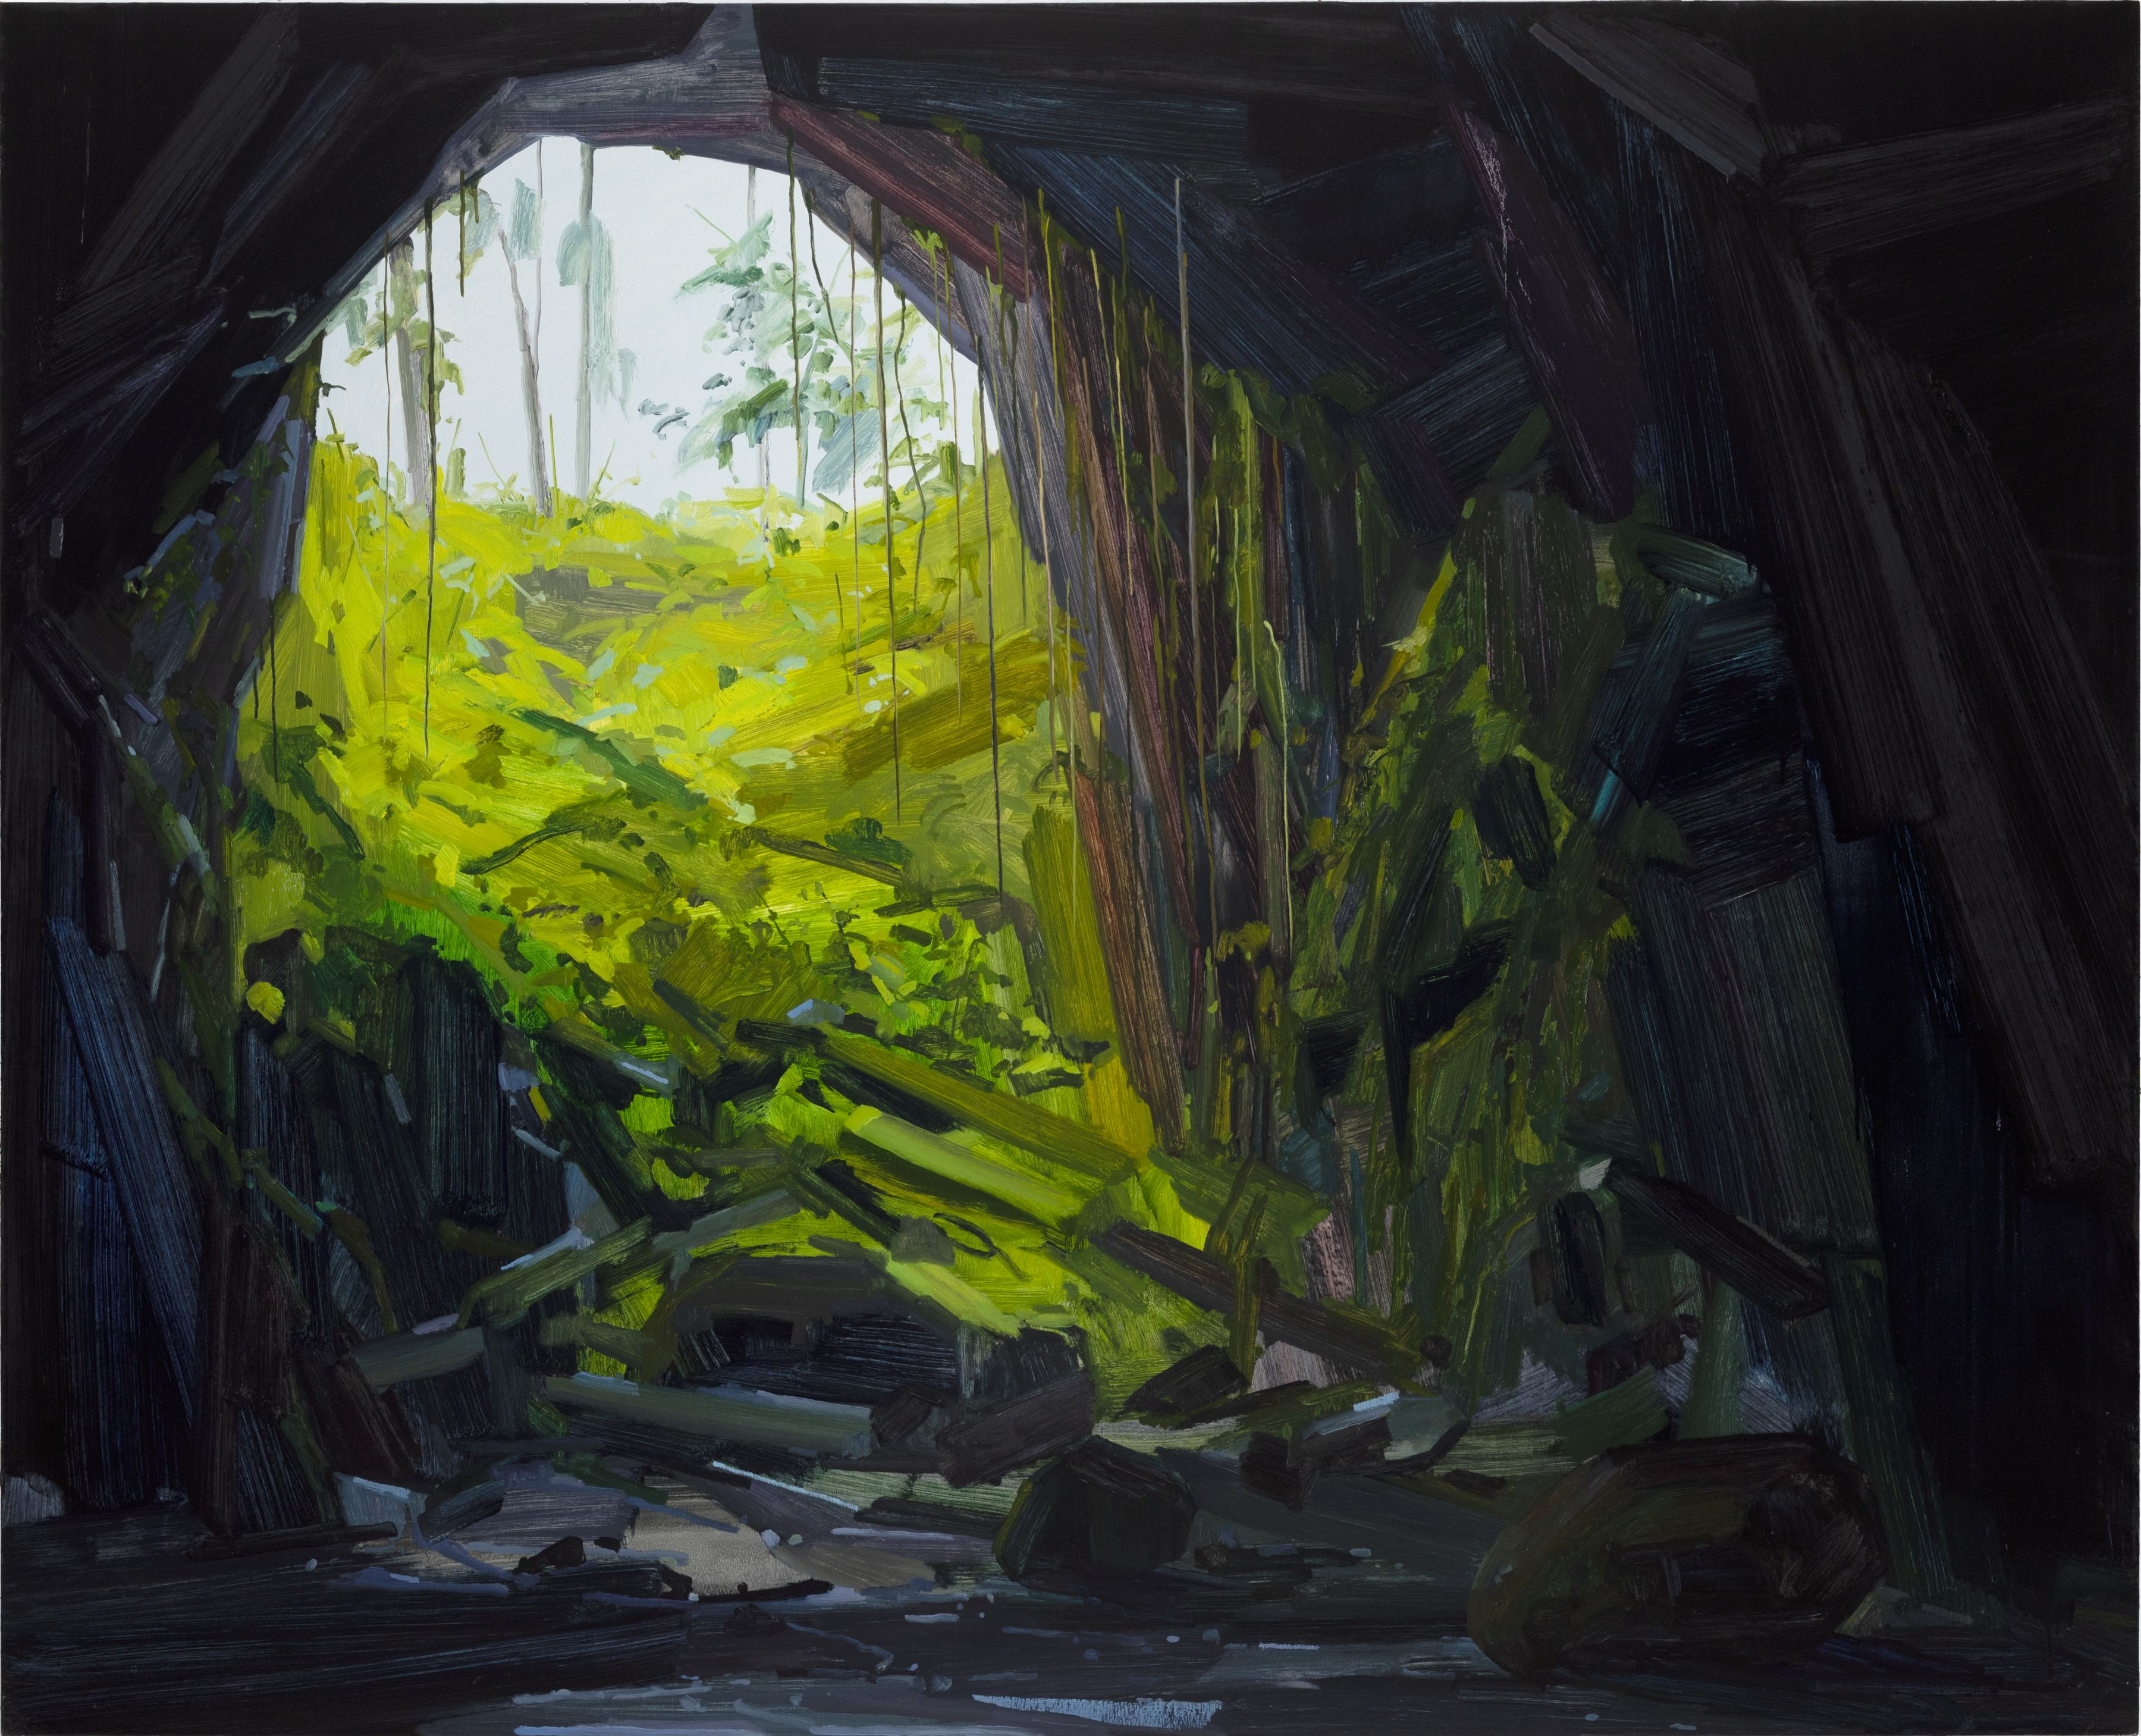 Cave, 2018 Oil on canvas